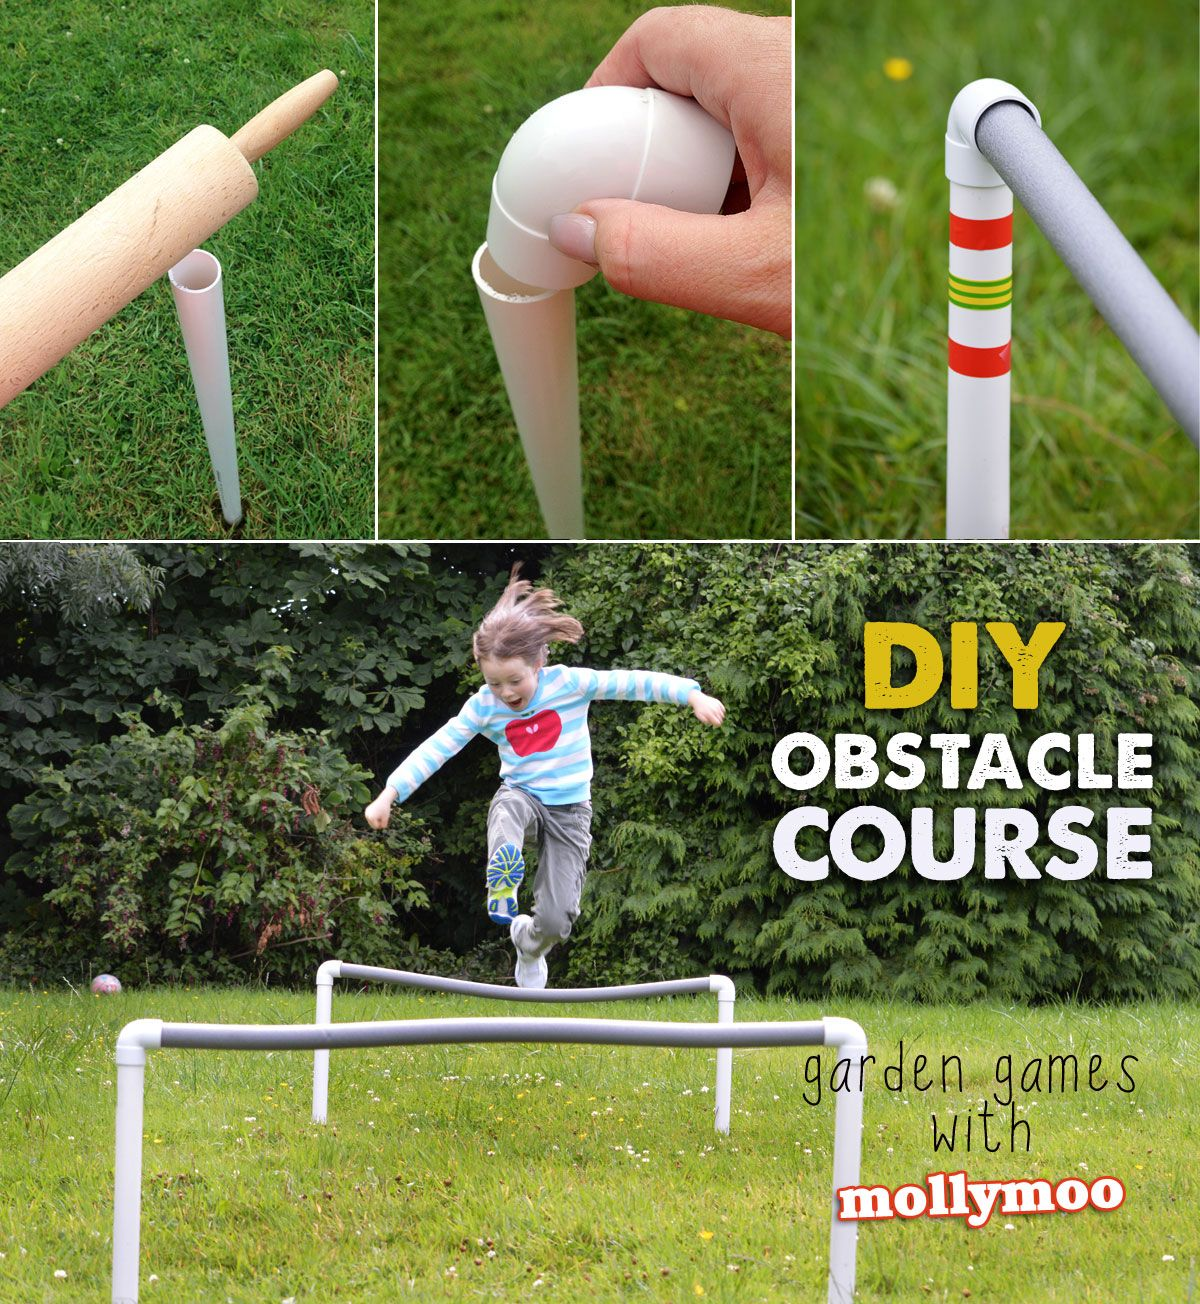 Diy Garden Games Obstacle Course Sjov